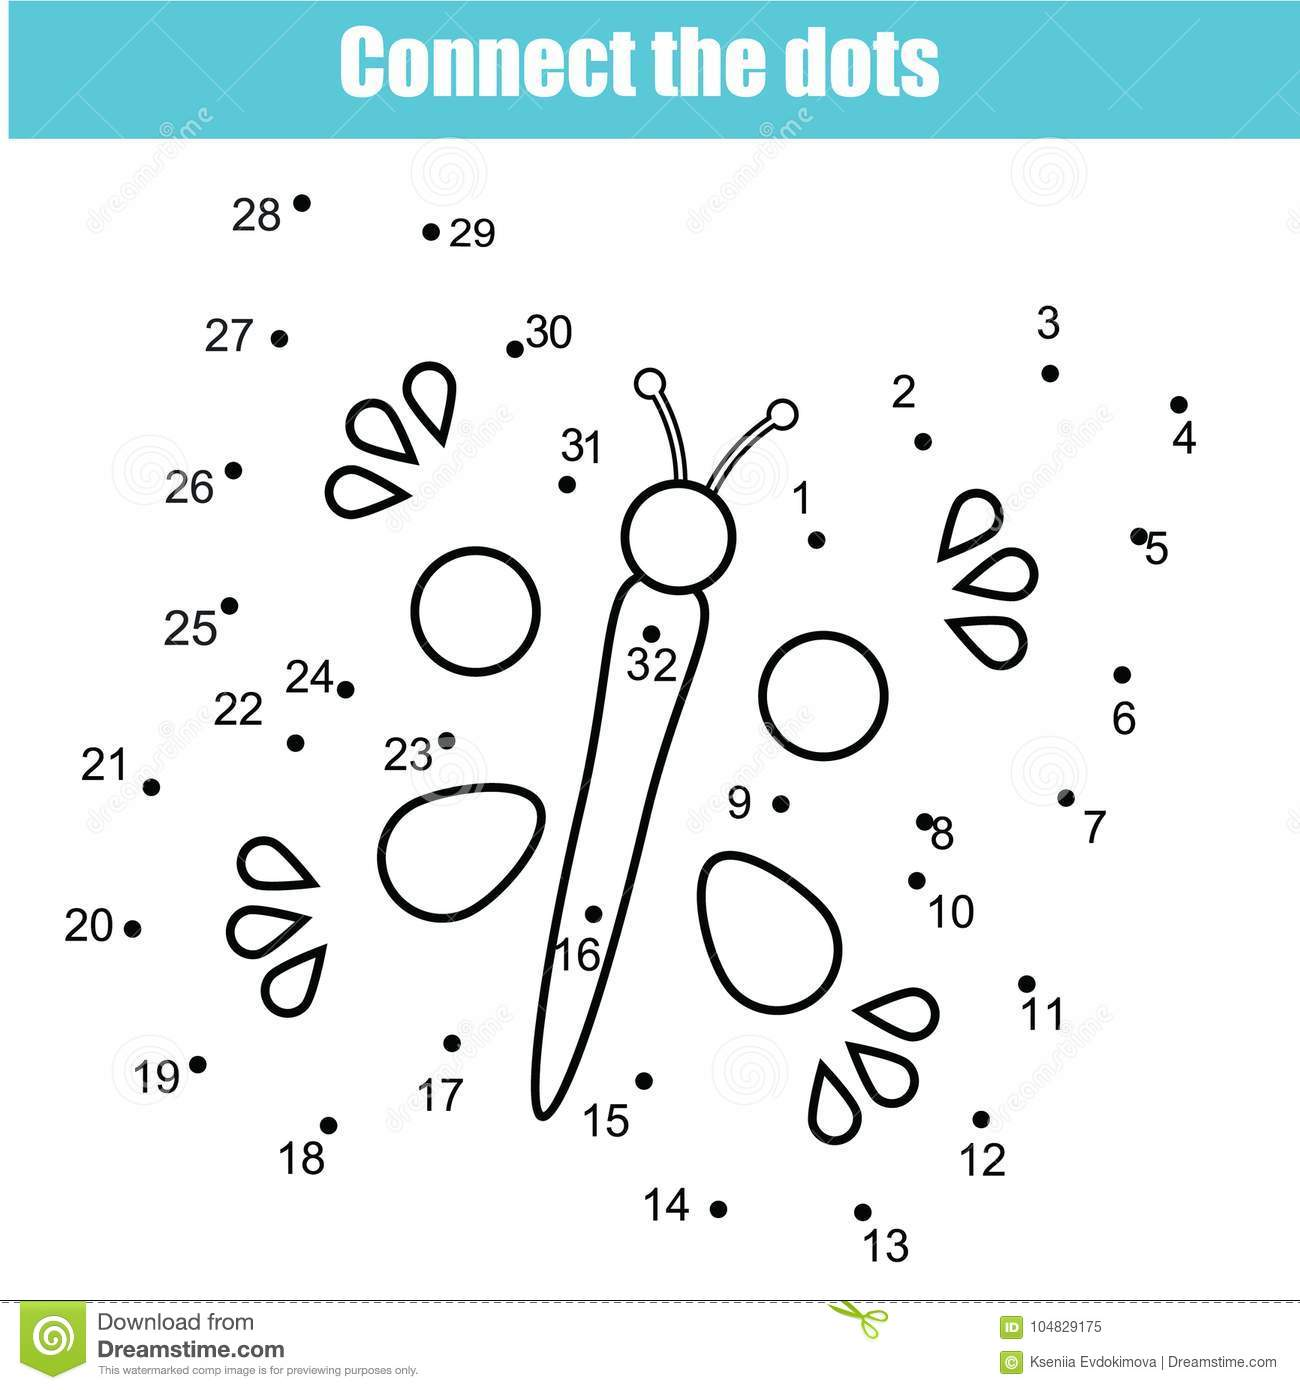 picture regarding Connect the Dots Game Printable known as Converse The Dots Through Quantities Kids Useful Activity